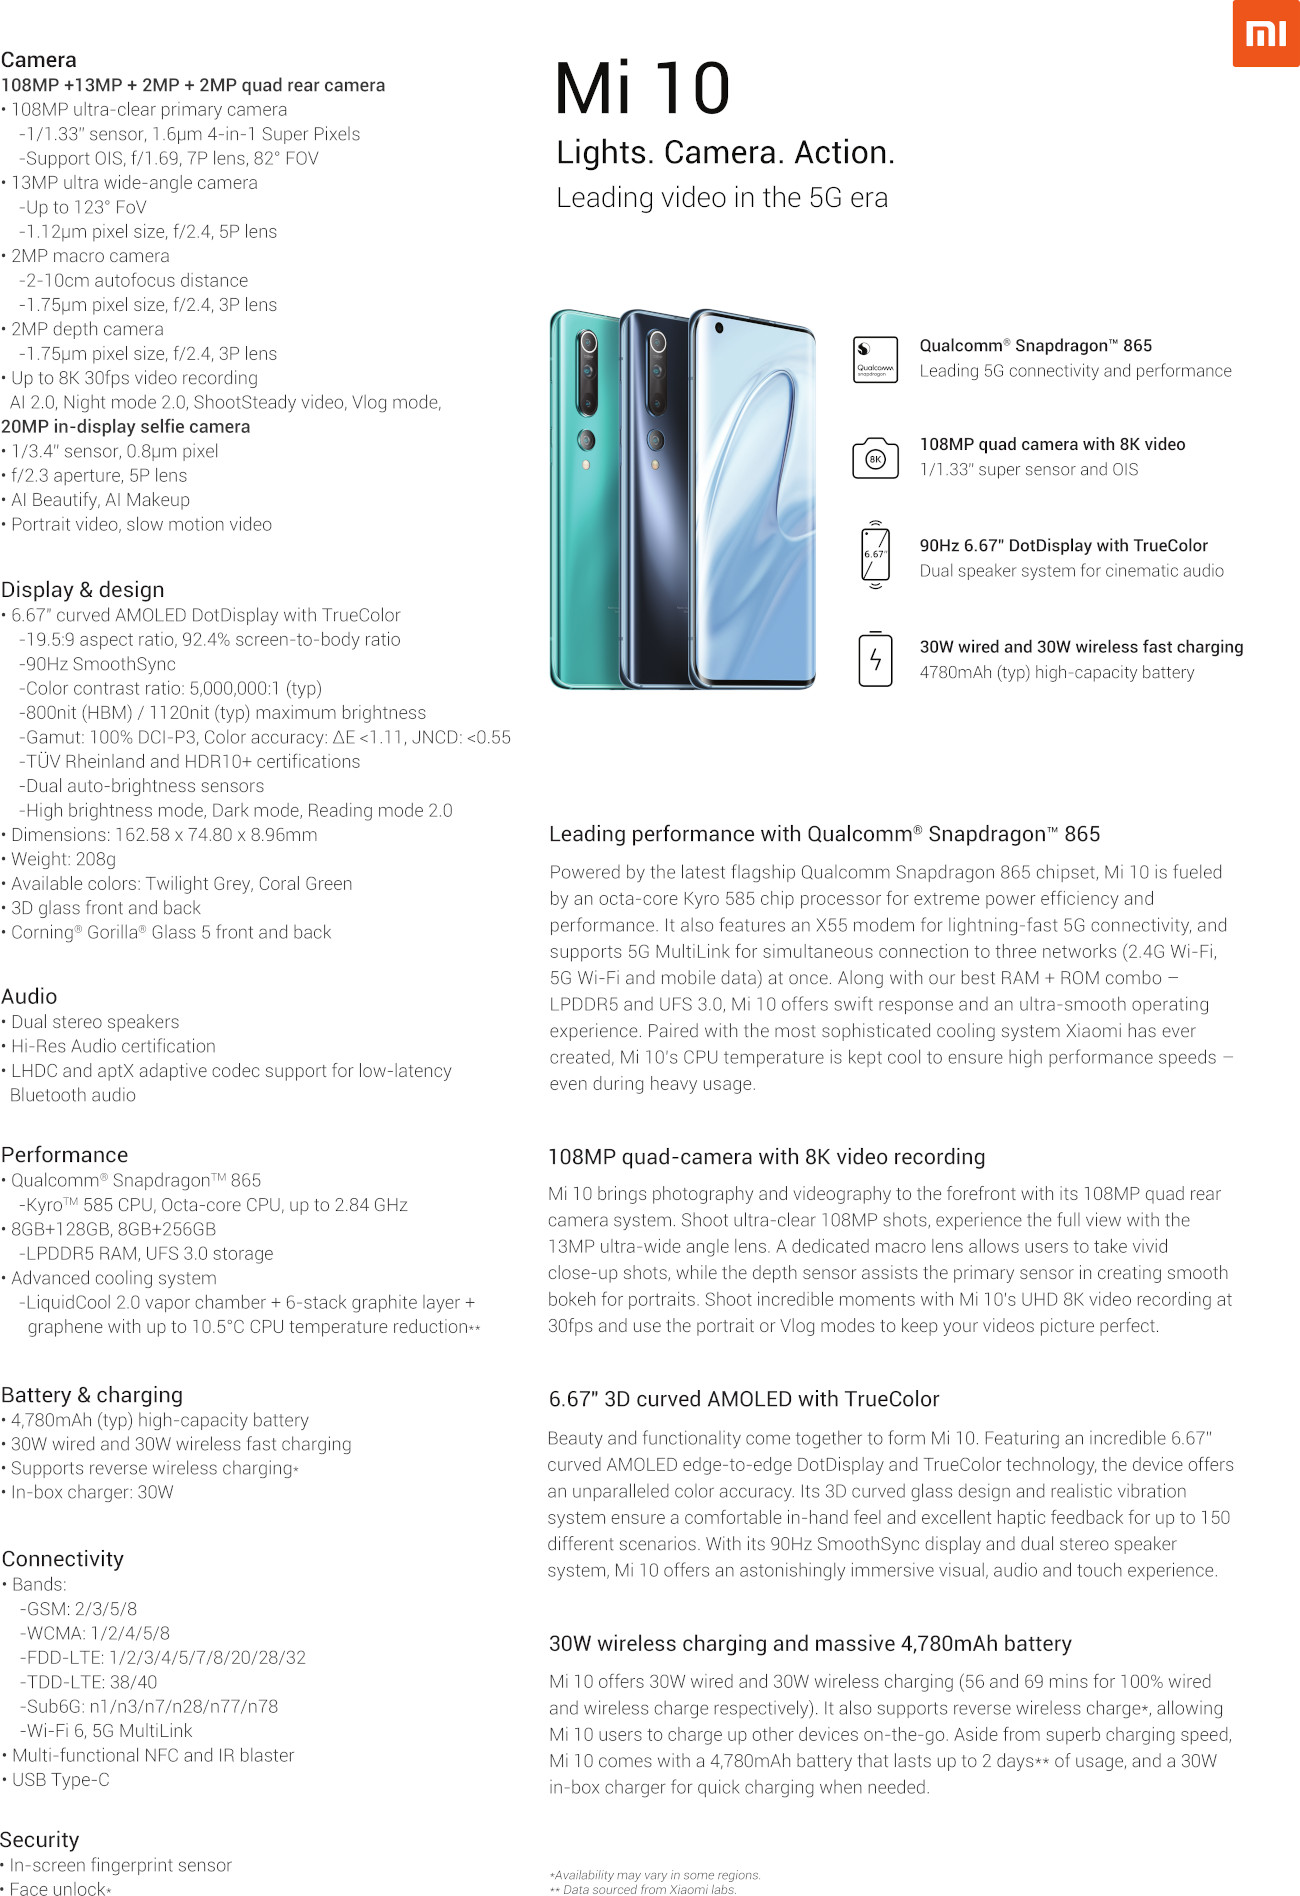 Mi 10 one-pager